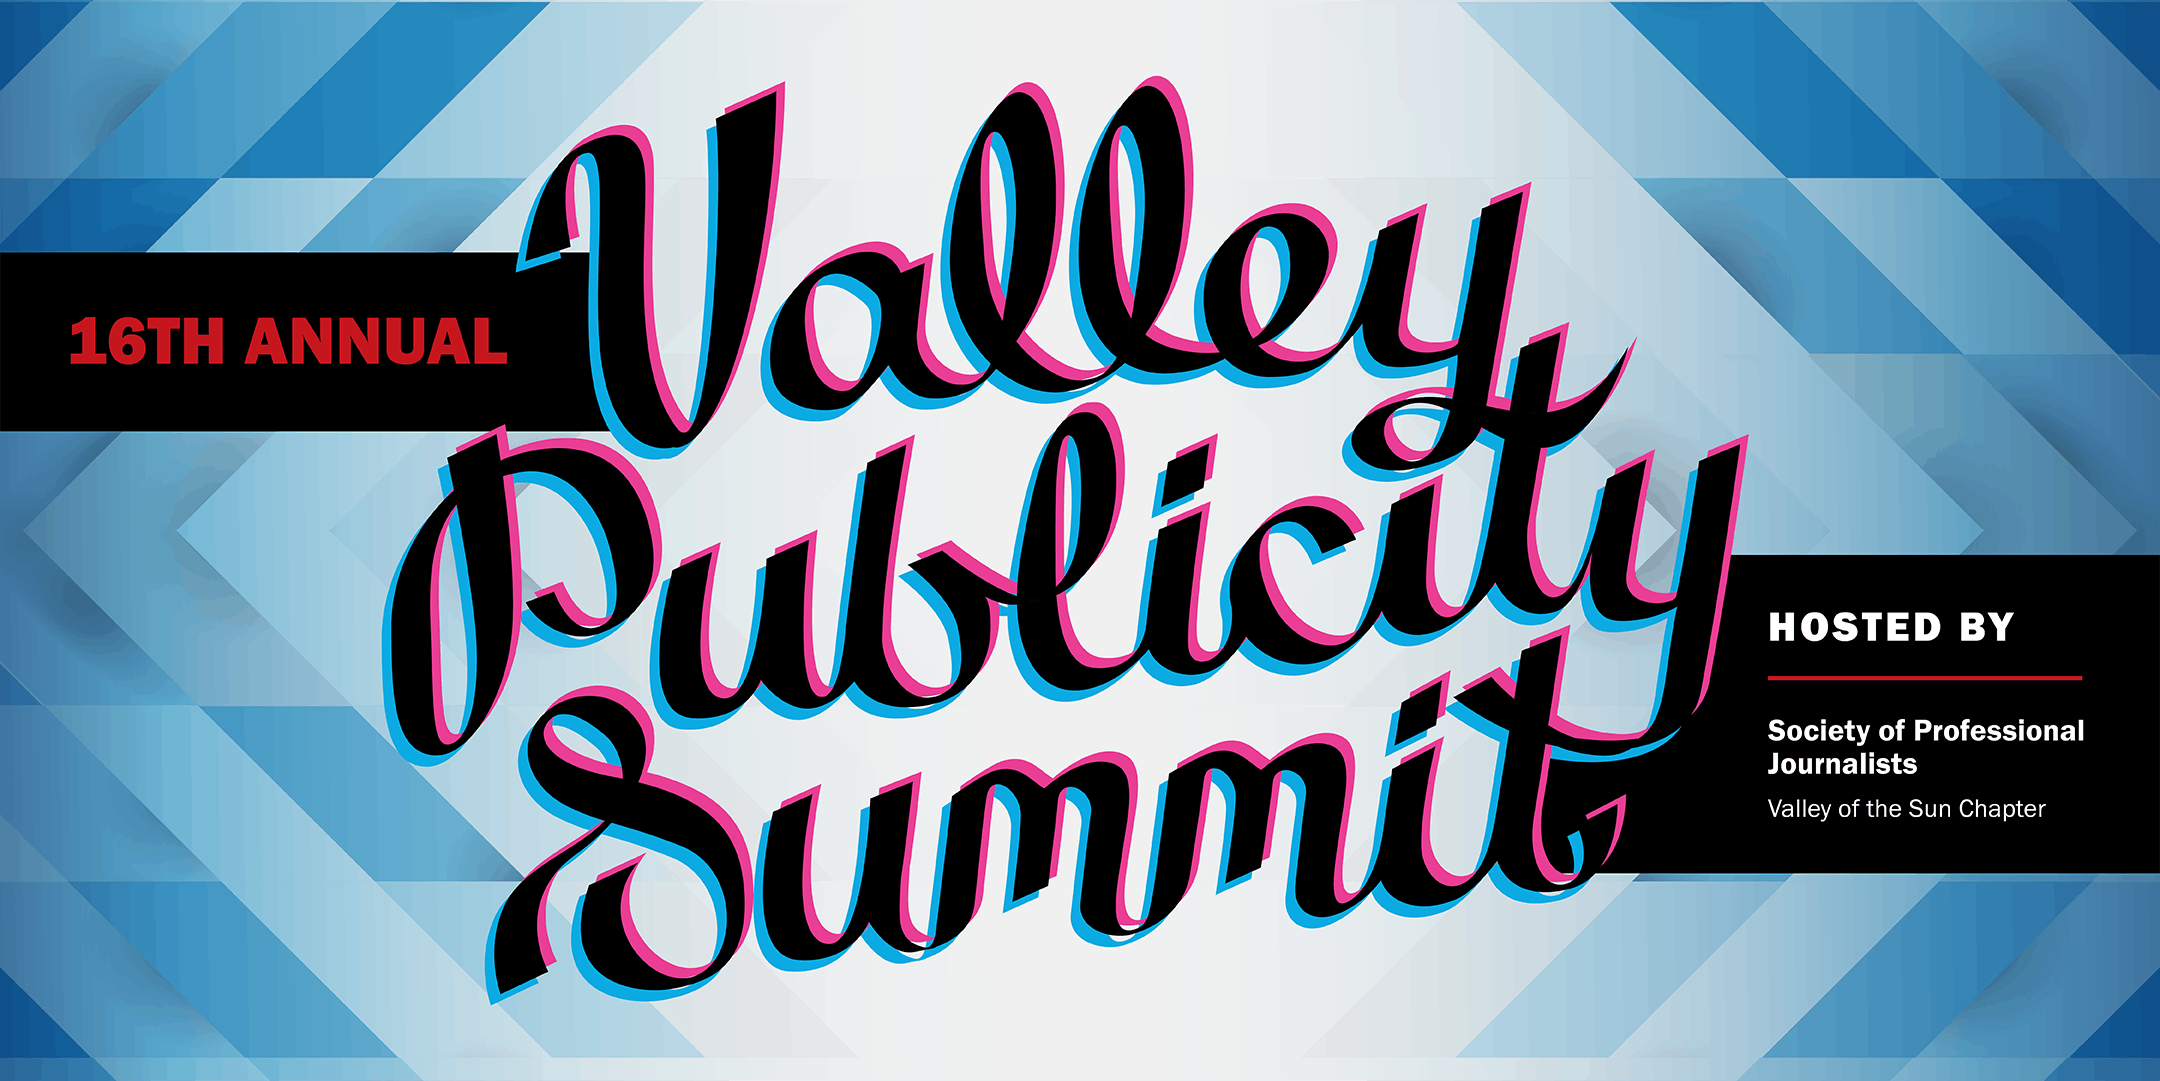 Valley Publicity Summit 2019, presented by SPJ